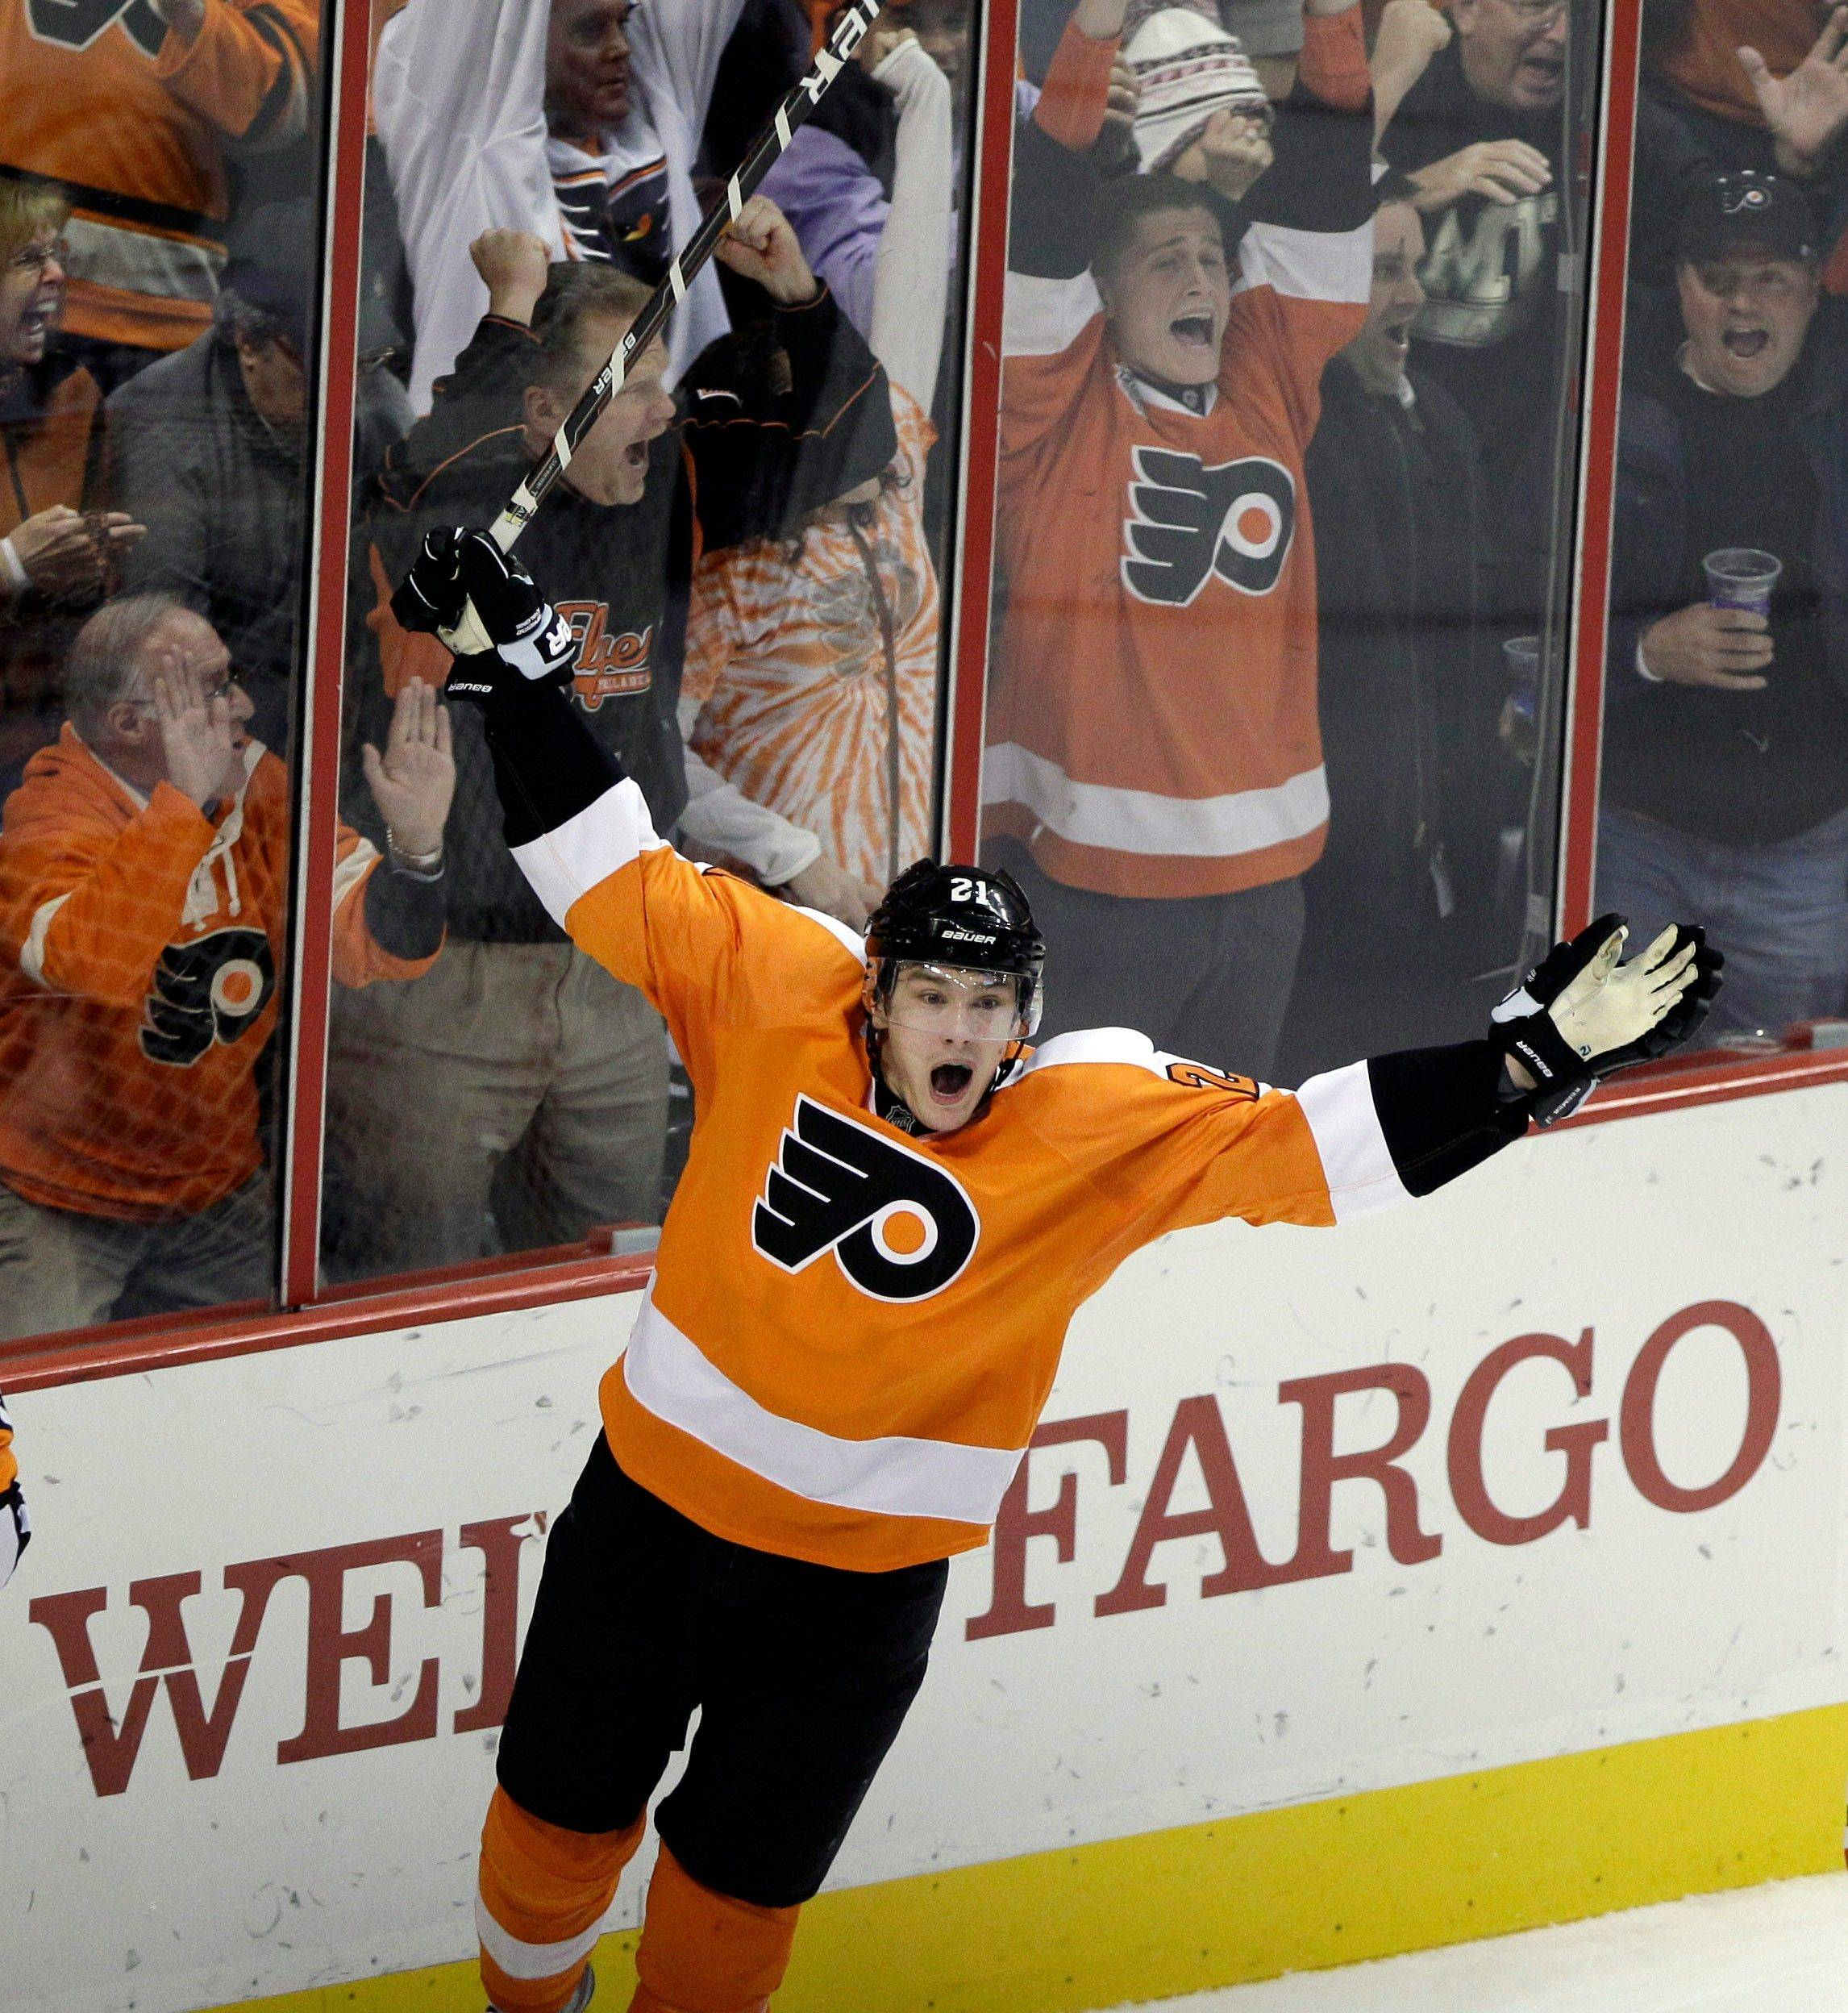 The Flyers' James van Riemsdyk celebrates his game-winning goal with 33 seconds left in the third period Thursday night.